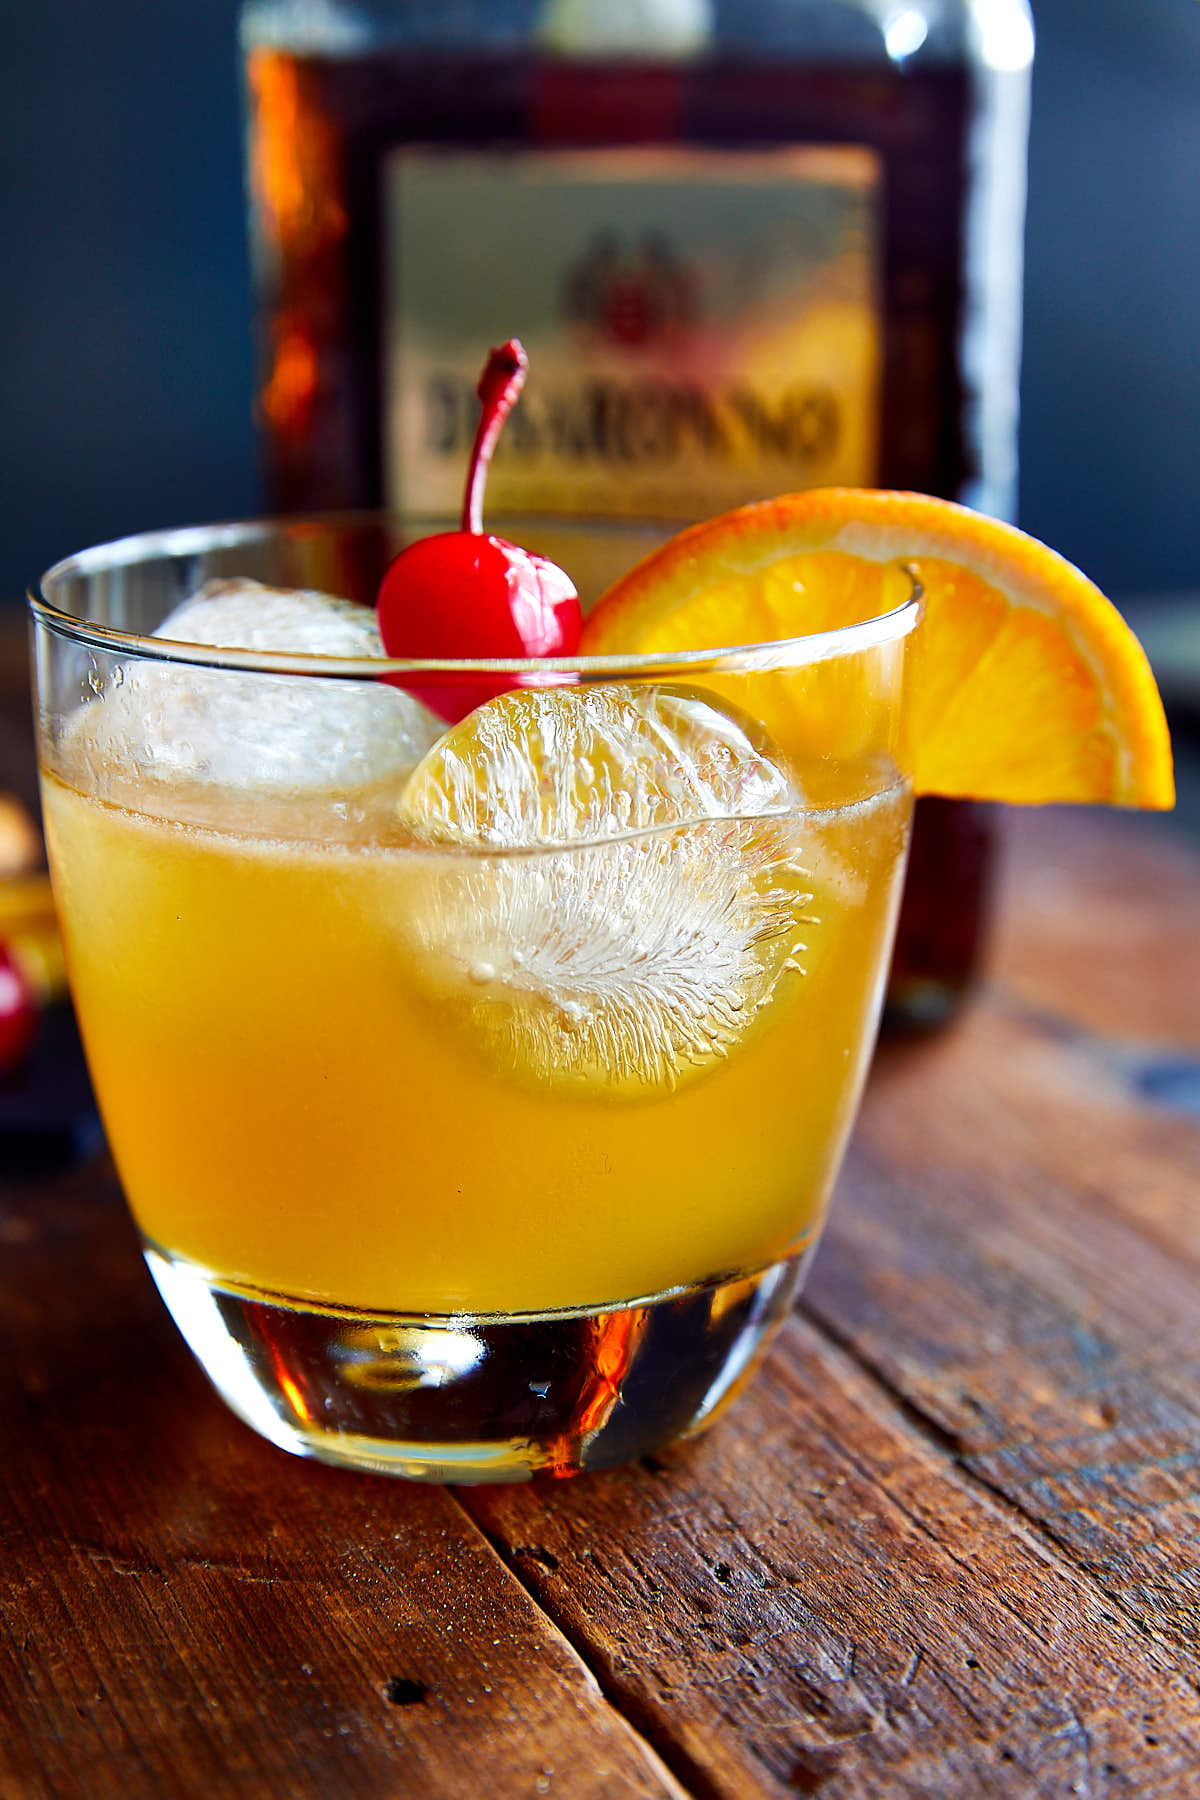 Amaretto sour drink in a glass with ice, garnished with a slice of orange and a maraschino cherry.